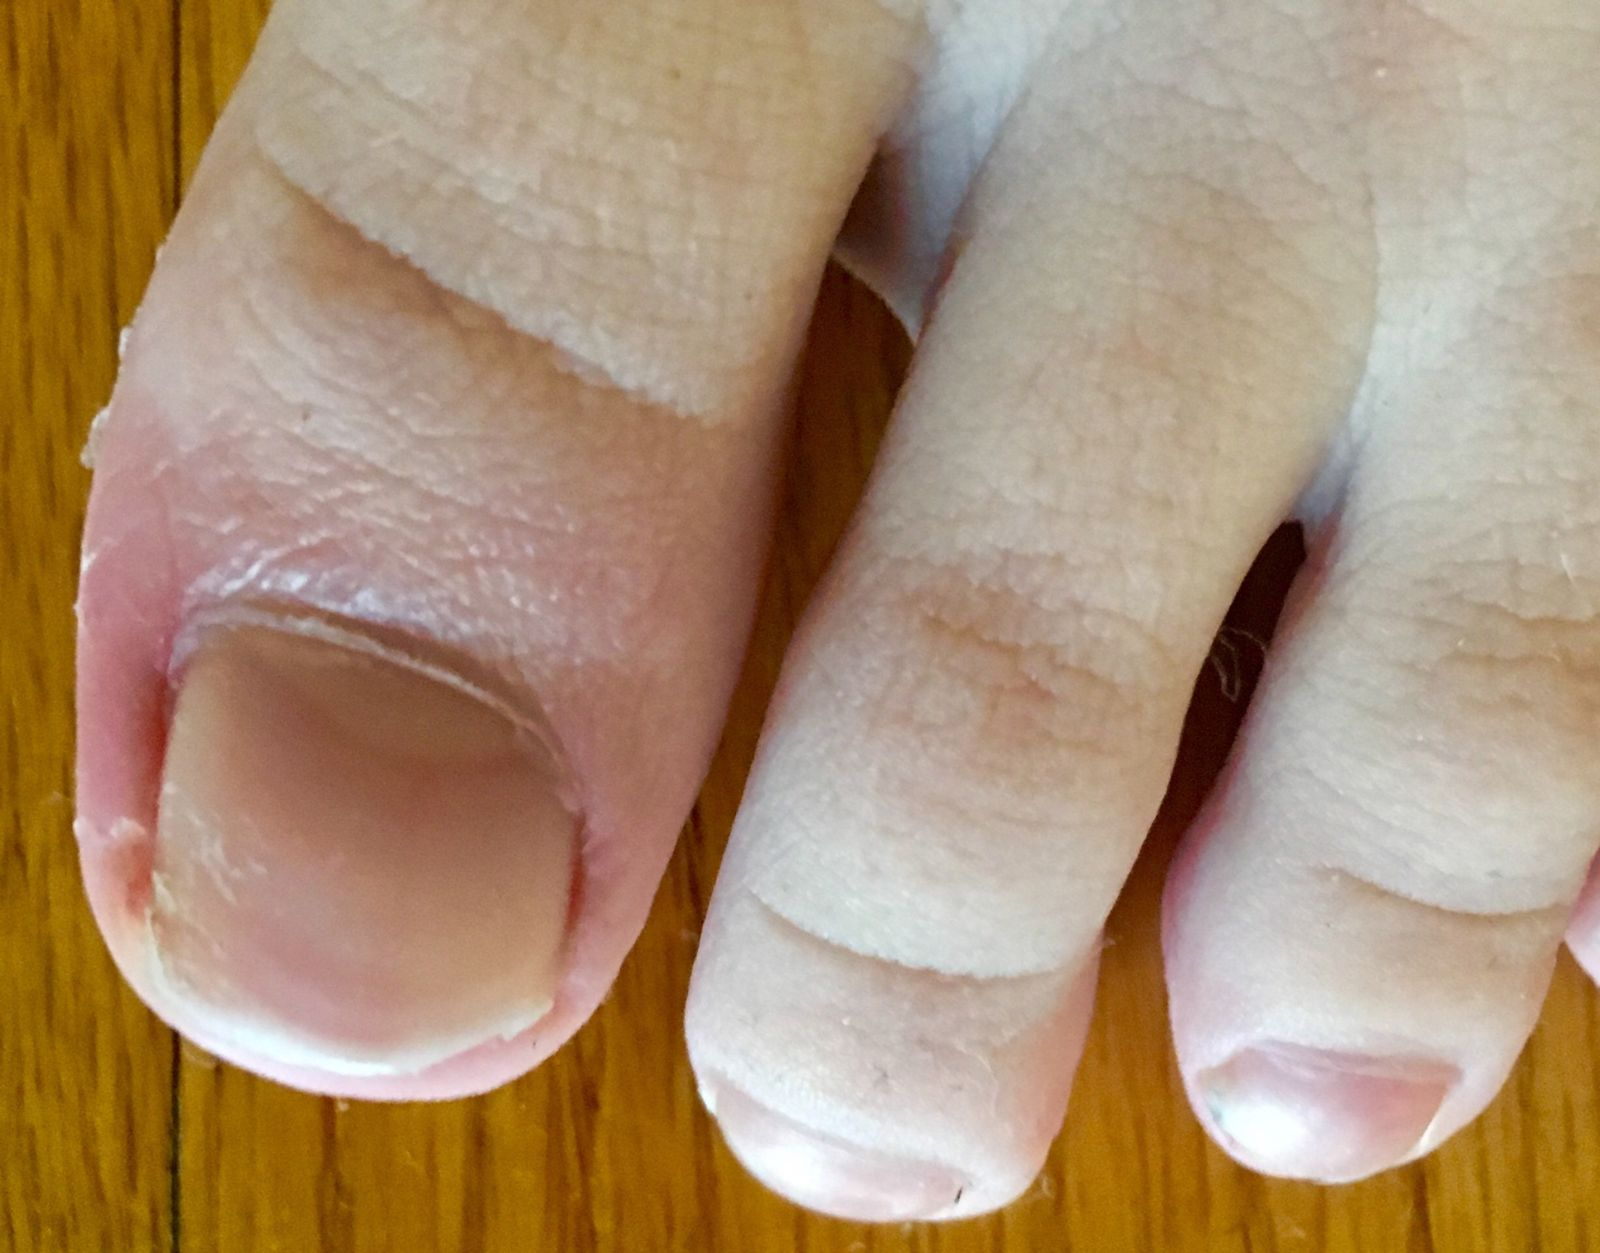 Note the redness and turned in nail on this little boy's toe: classic ingrown toenail symptoms